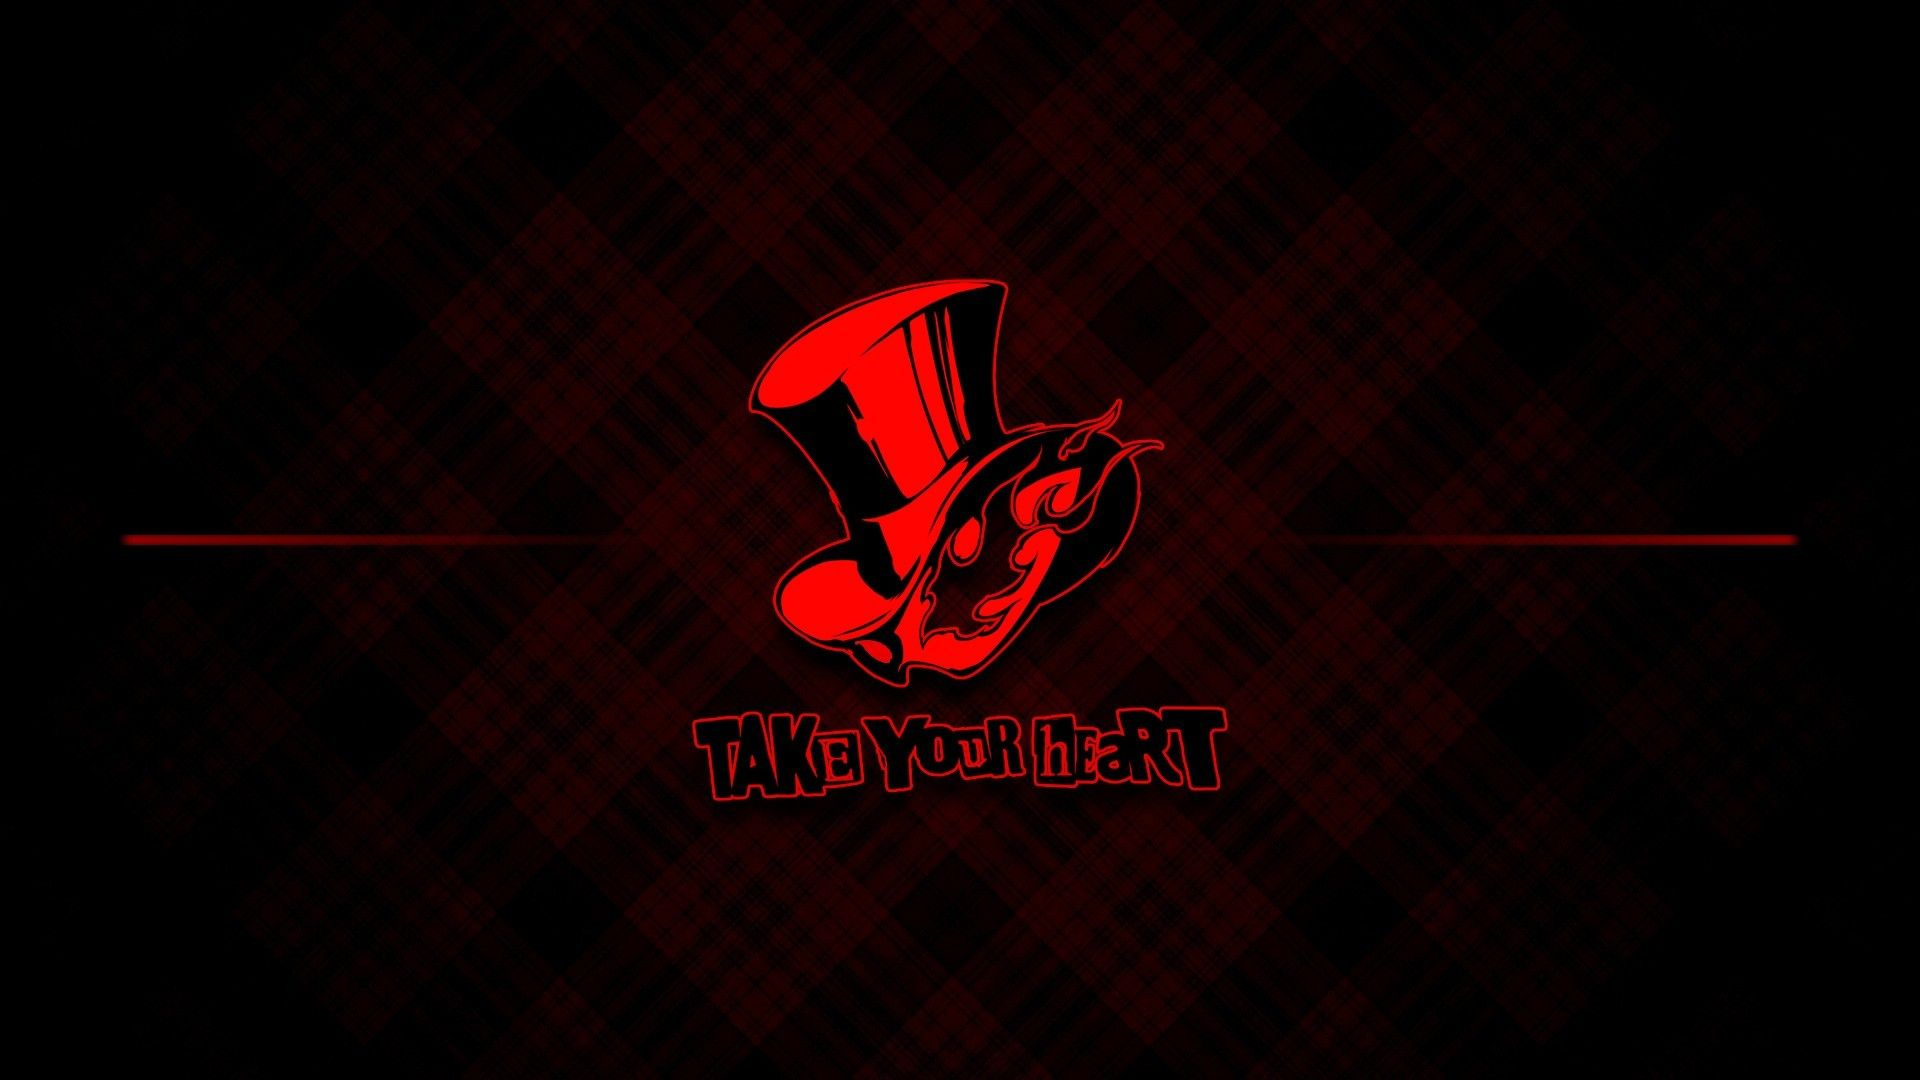 Res 1920x1080 Excellent Persona 5 Hd Hdq Cover Wallpapers Hx230549410 Persona 5 Persona 5 Joker Persona